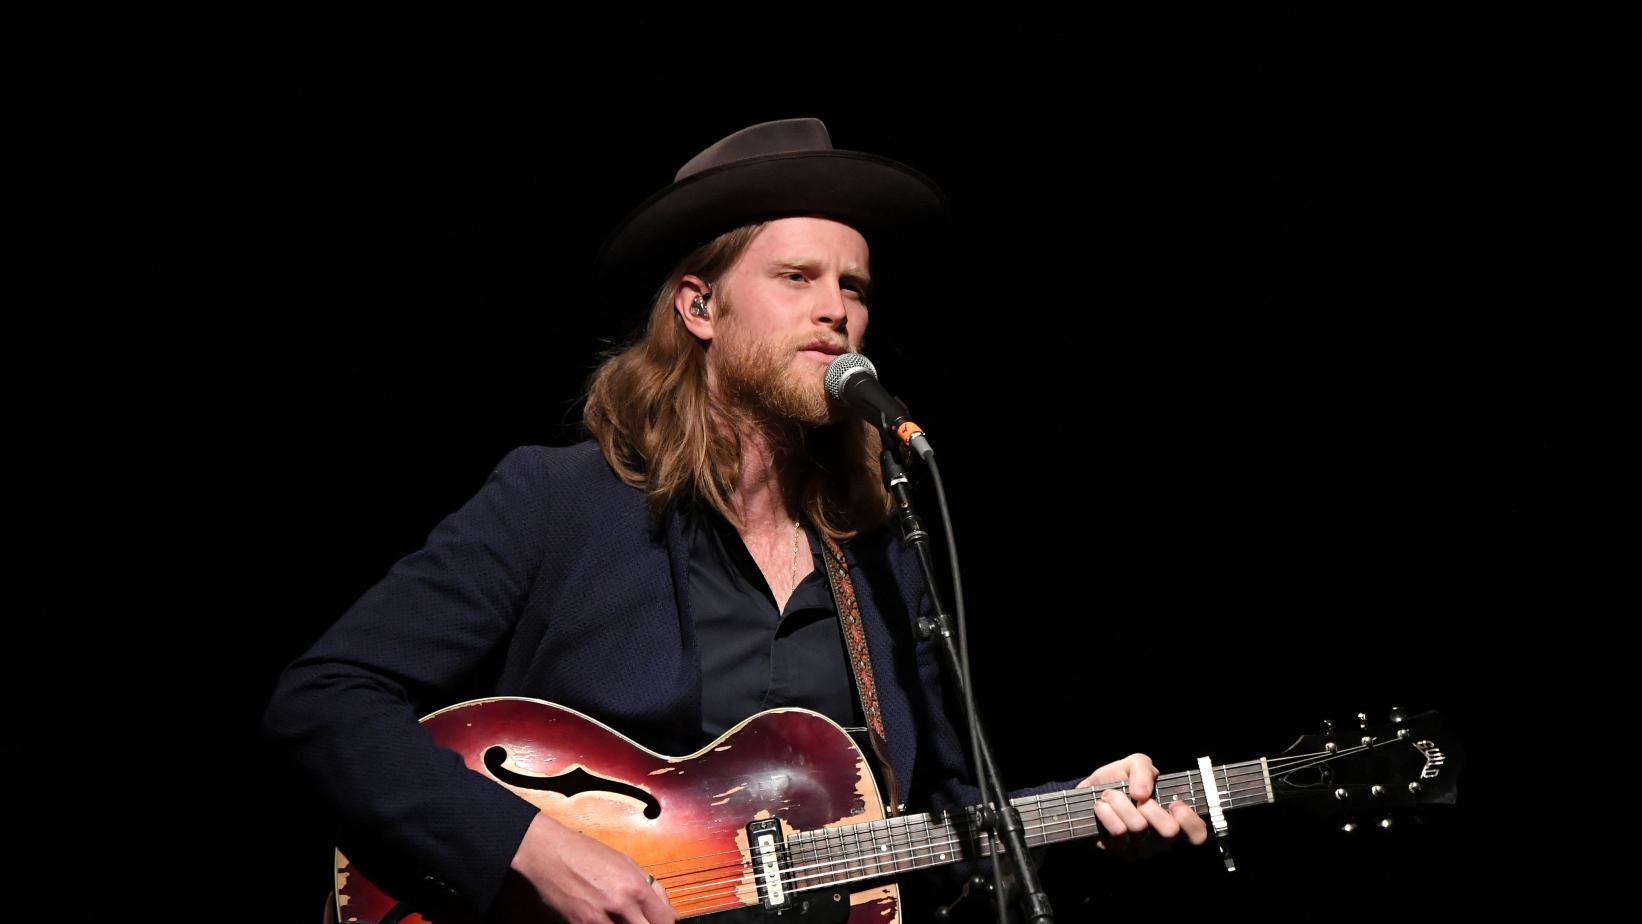 Wesley Schultz performs at the MusiCares MAP Fund benefit